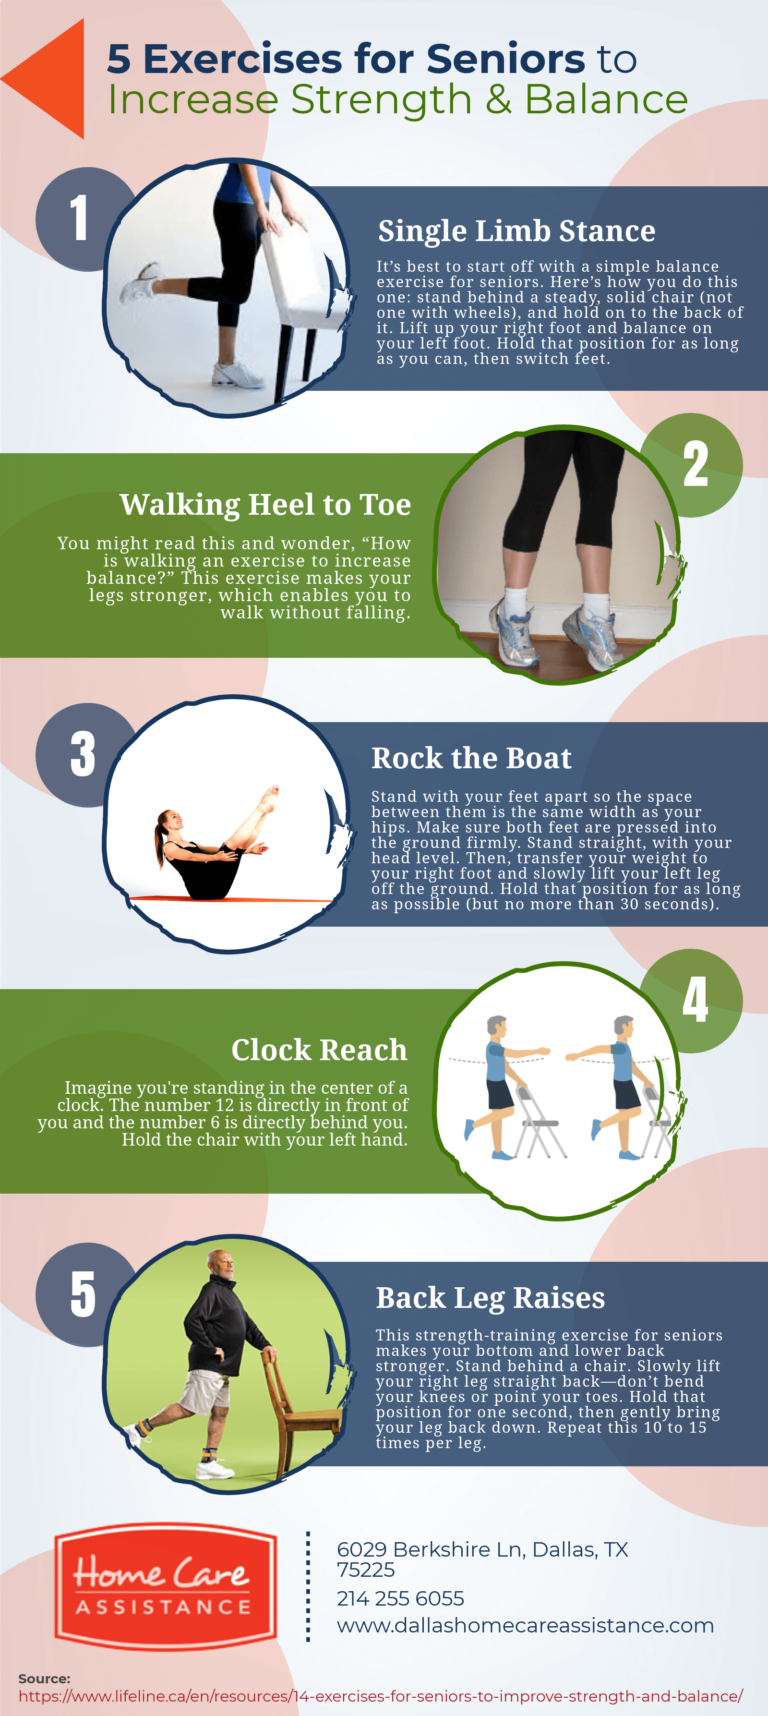 5 Exercises for Seniors to Increase Strength & Balance #infographic